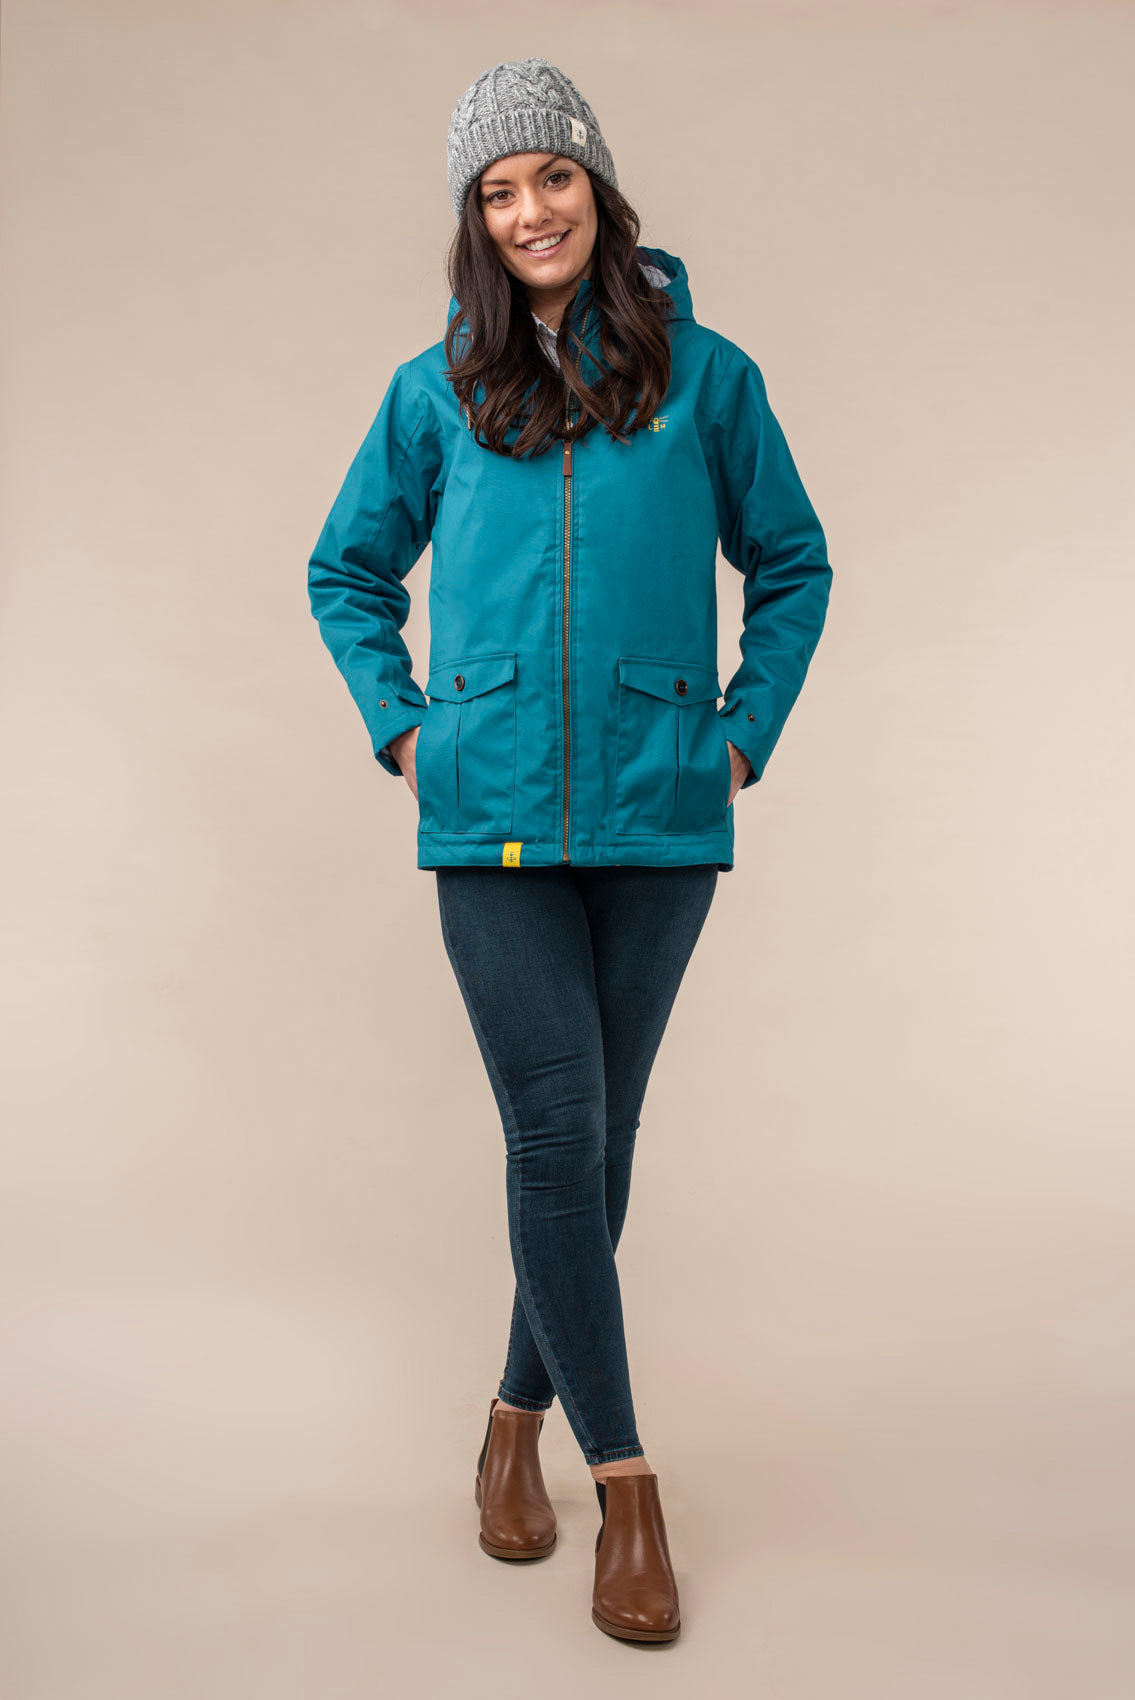 Lighthouse Faye - Women's Warm Padded Raincoat - Ocean Deep